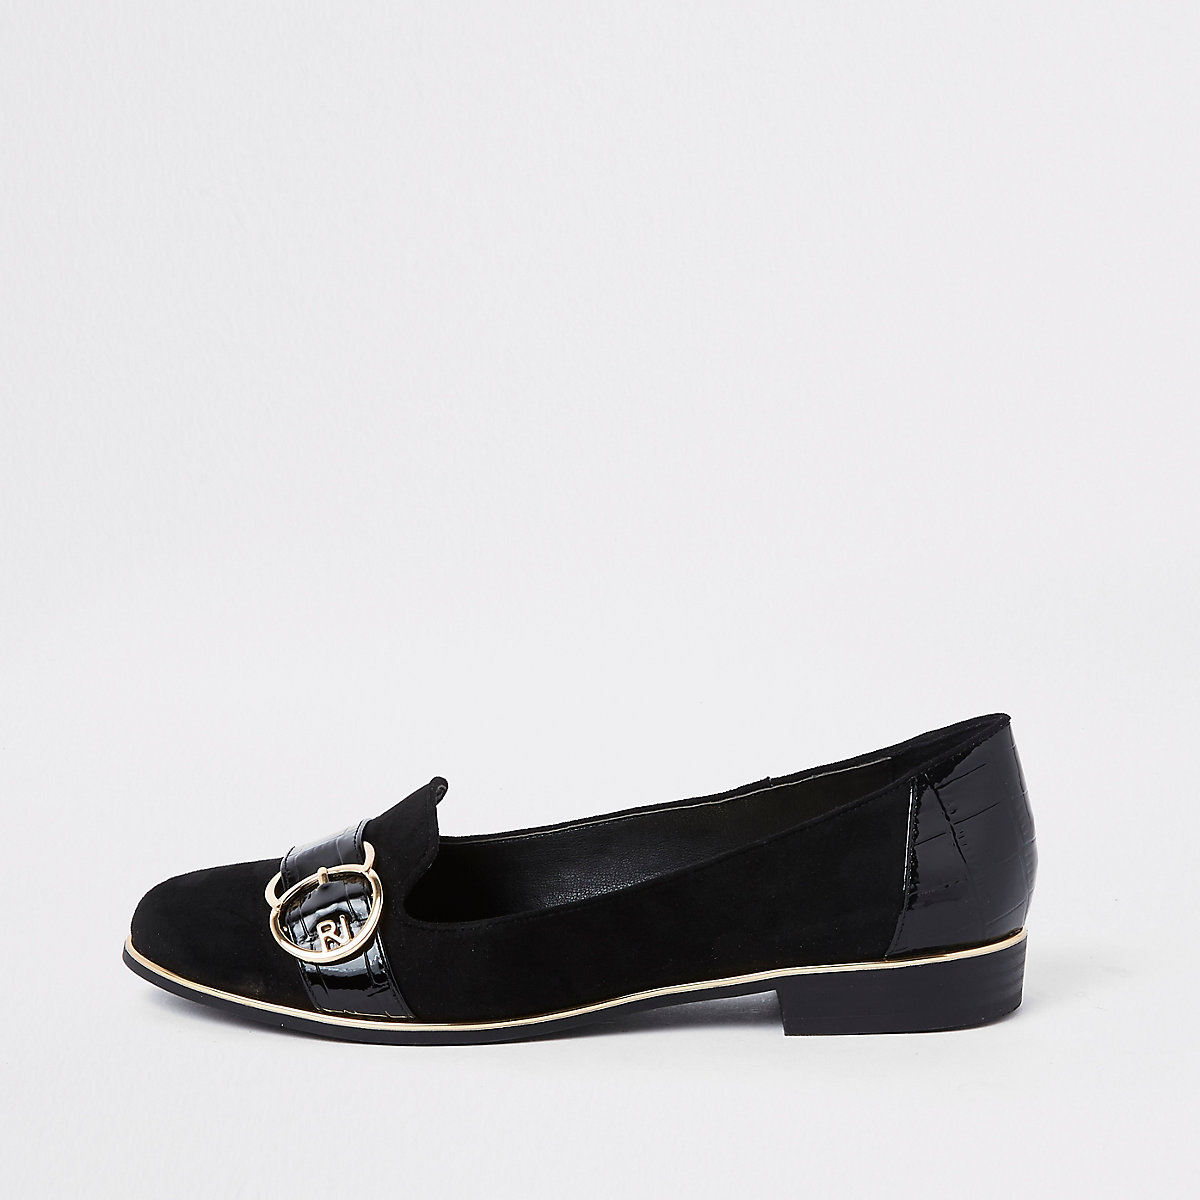 Black wide fit gold tone buckle ballet shoe